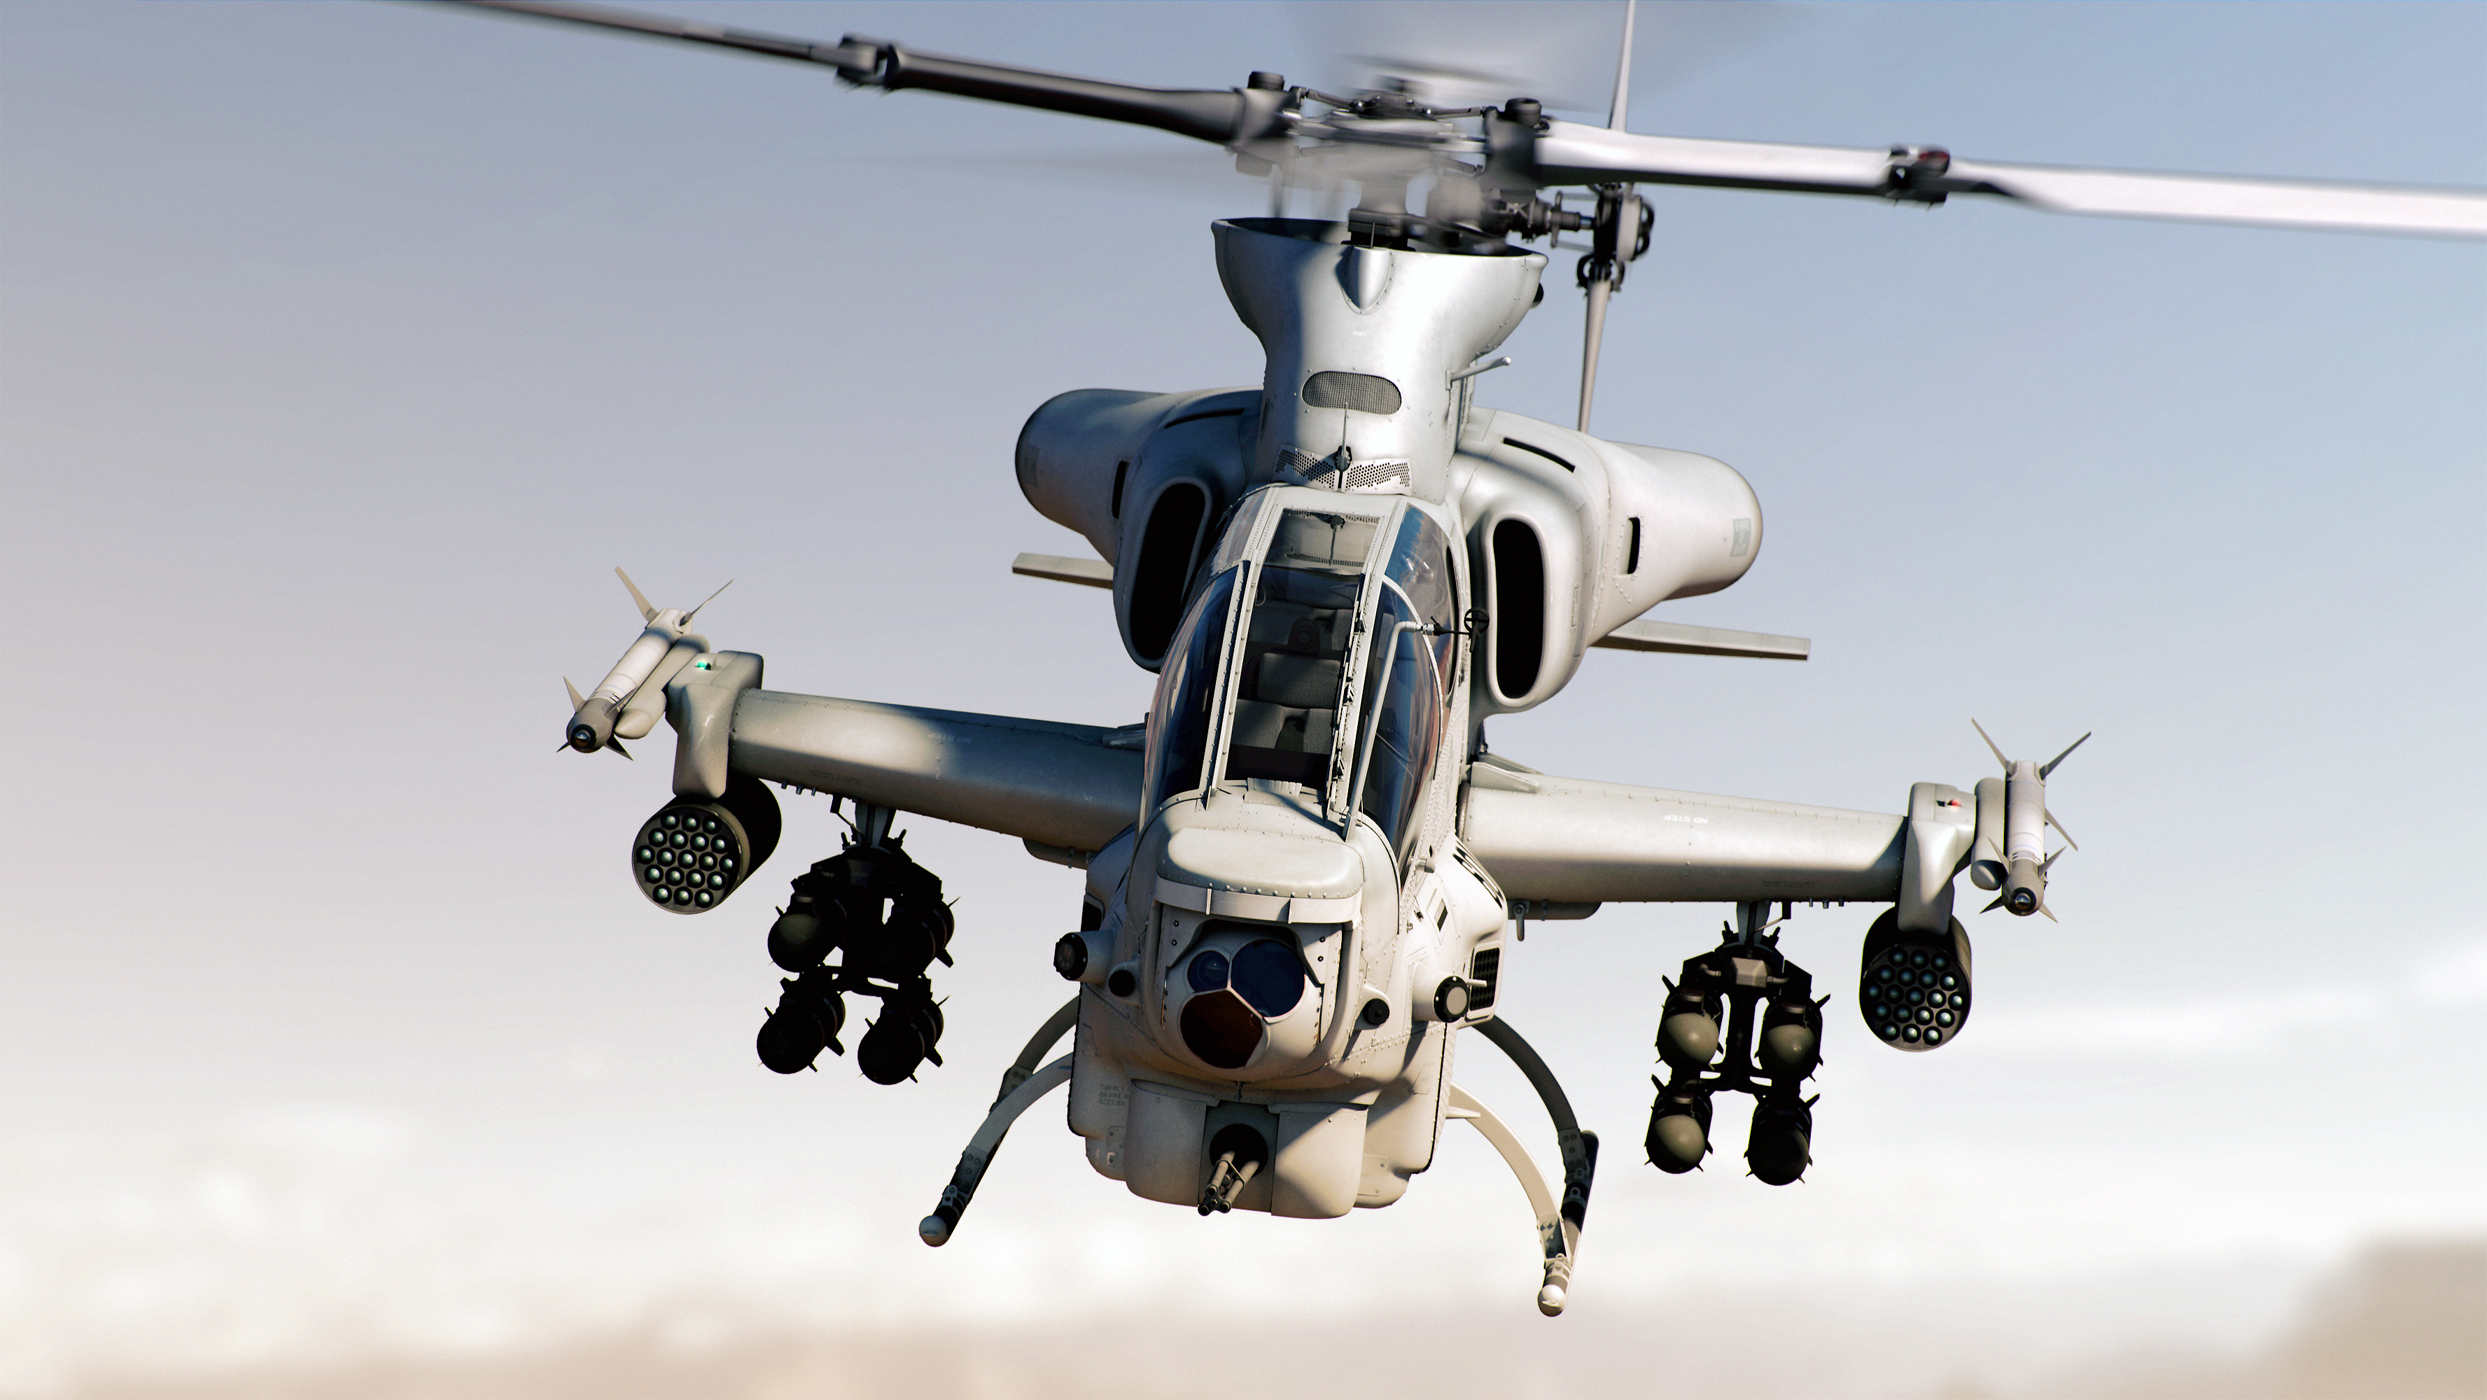 viper helicopter with By Sub Category on H 1 fuel tanks also Attack Helicopters Equipment Part 2 additionally Turkey Shortlists 2 Attack Helicopters Updated 02397 in addition By sub category further Spaceship Design Concepts.